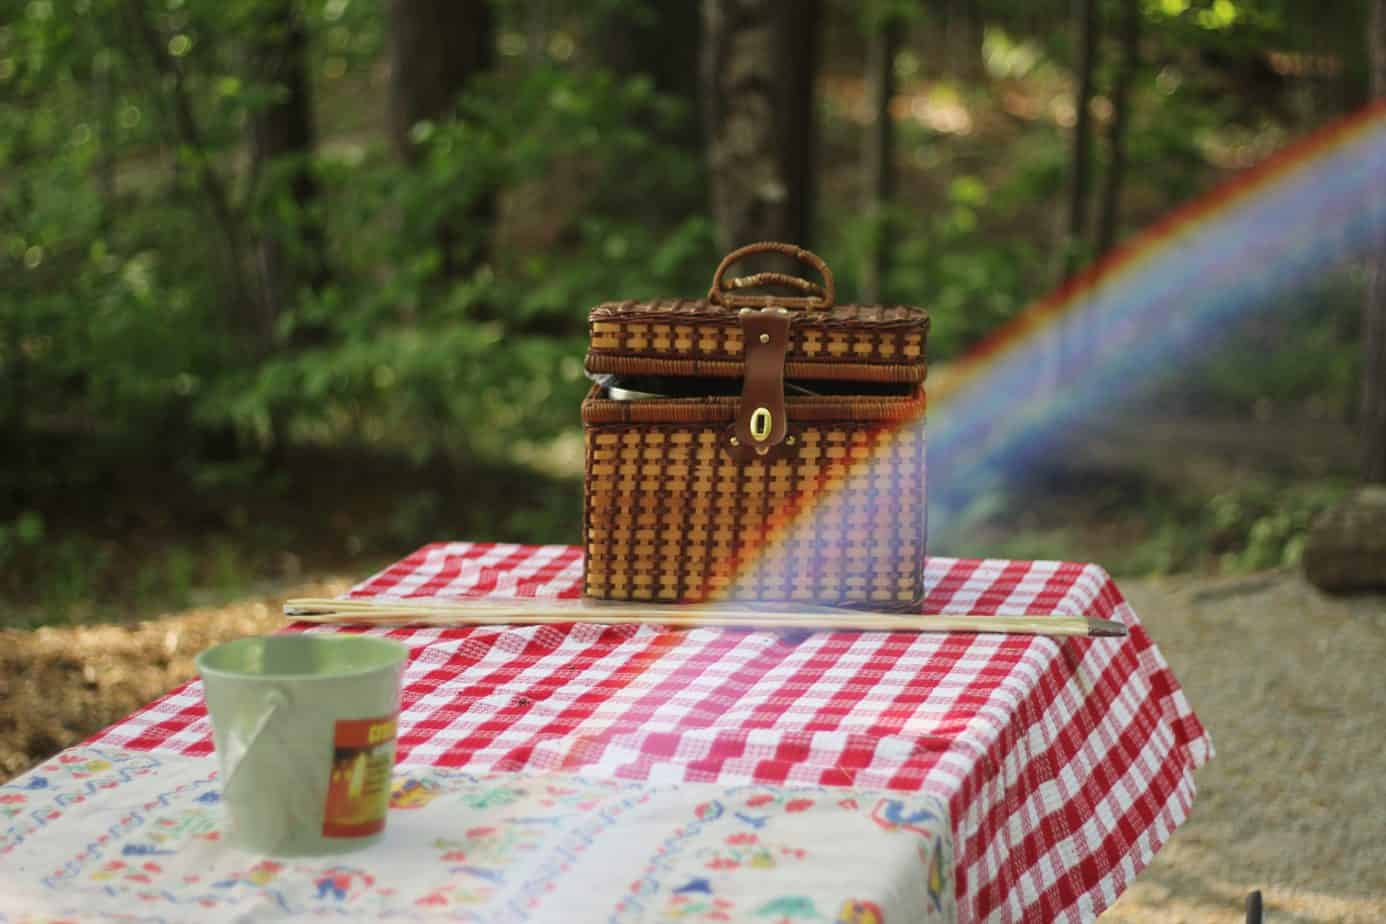 Top Tips for a successful quick picnic